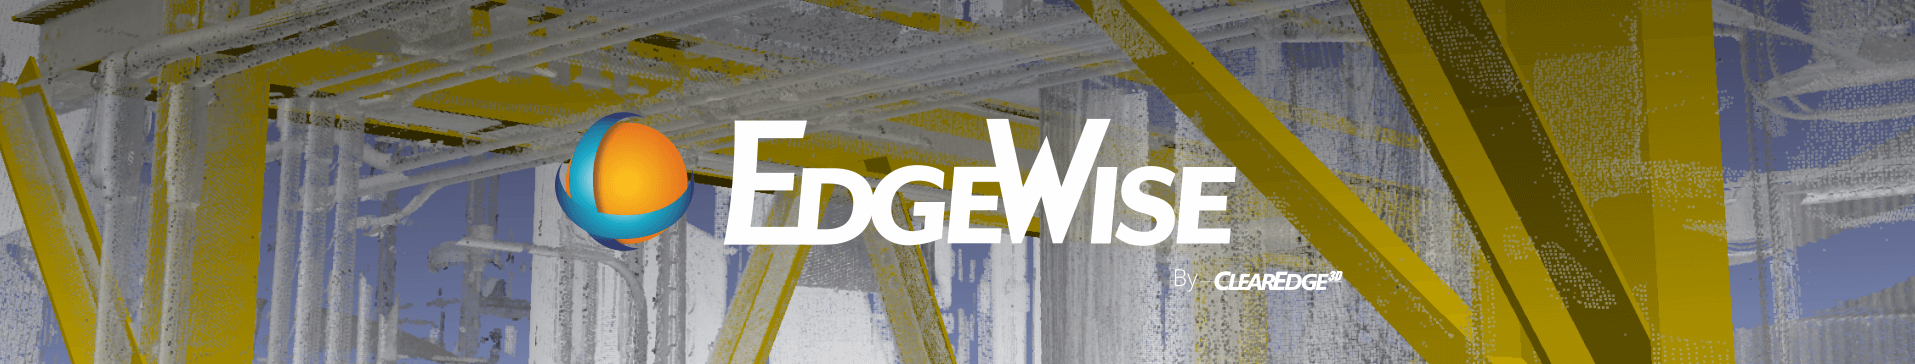 EDGEWISE_top-a